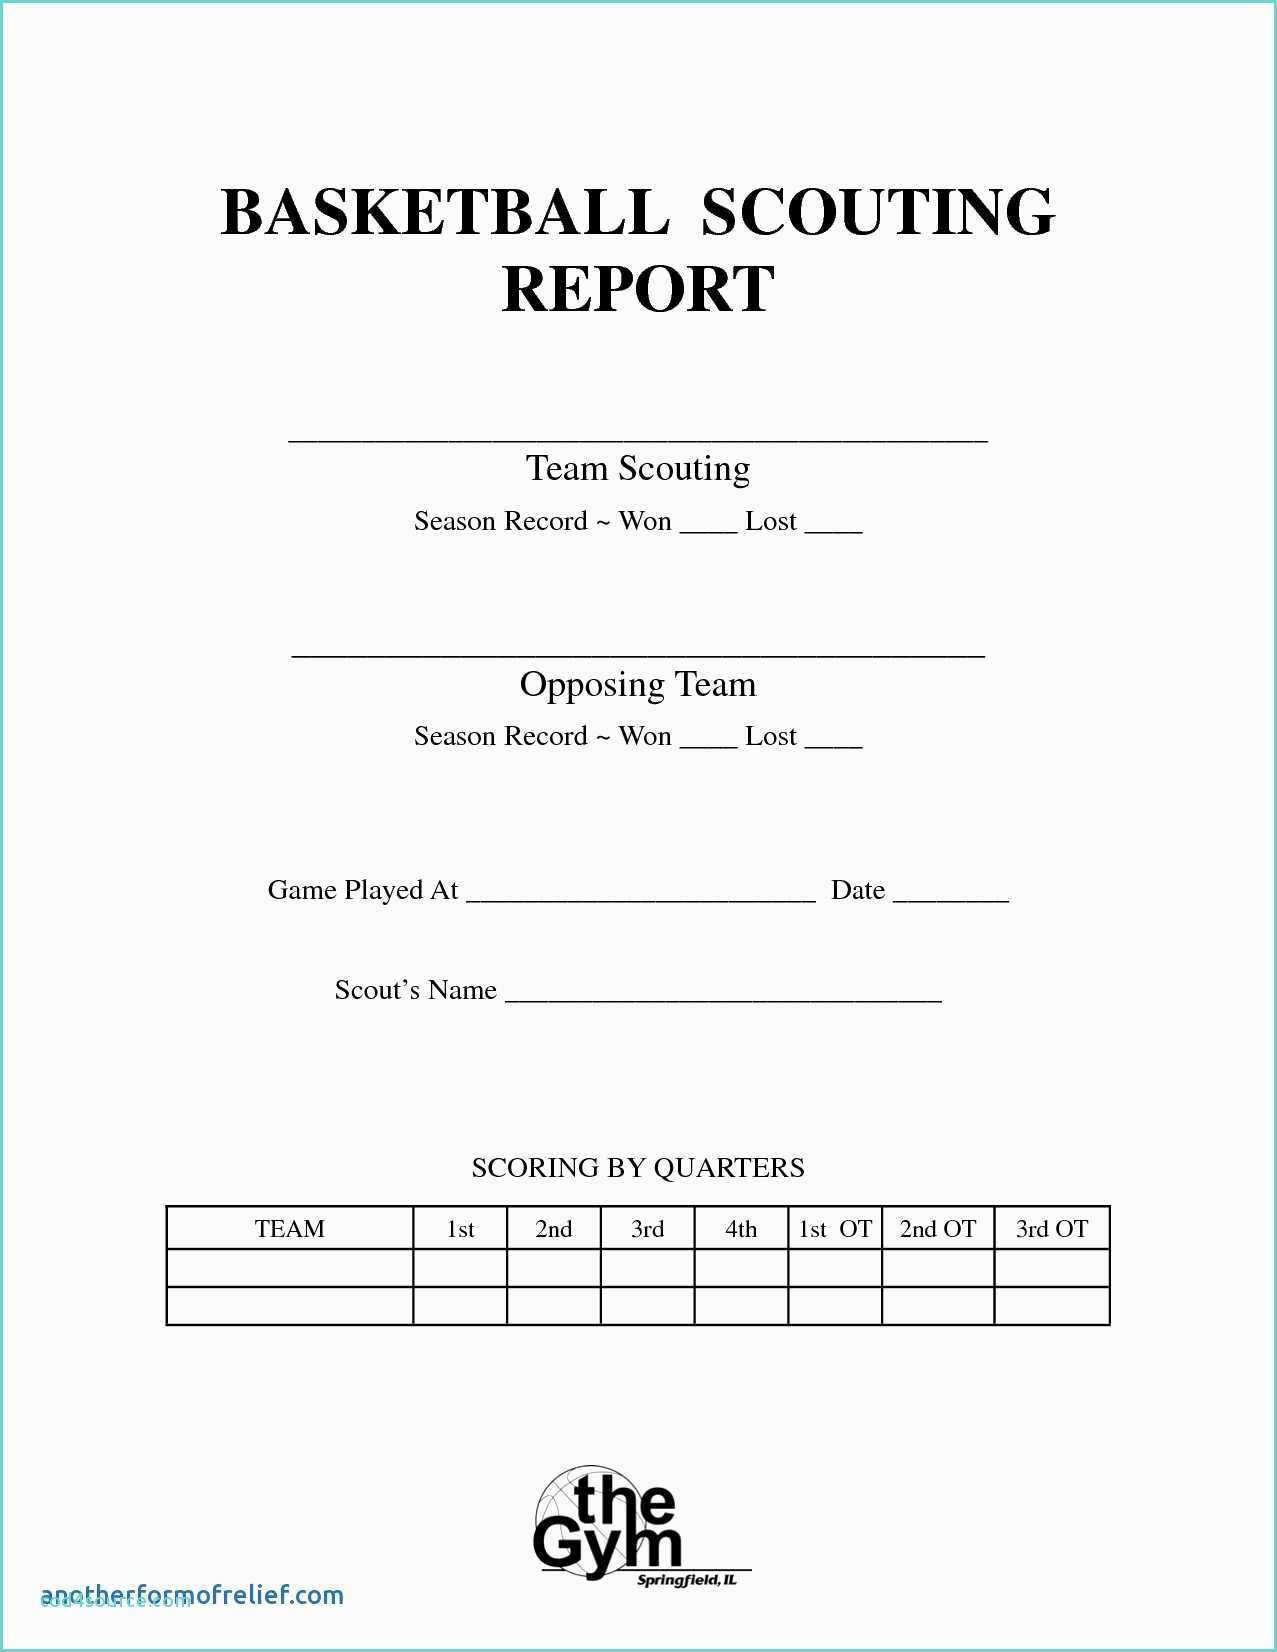 Bowling Spreadsheet And Basketball Scouting Report Template For Basketball Scouting Report Template